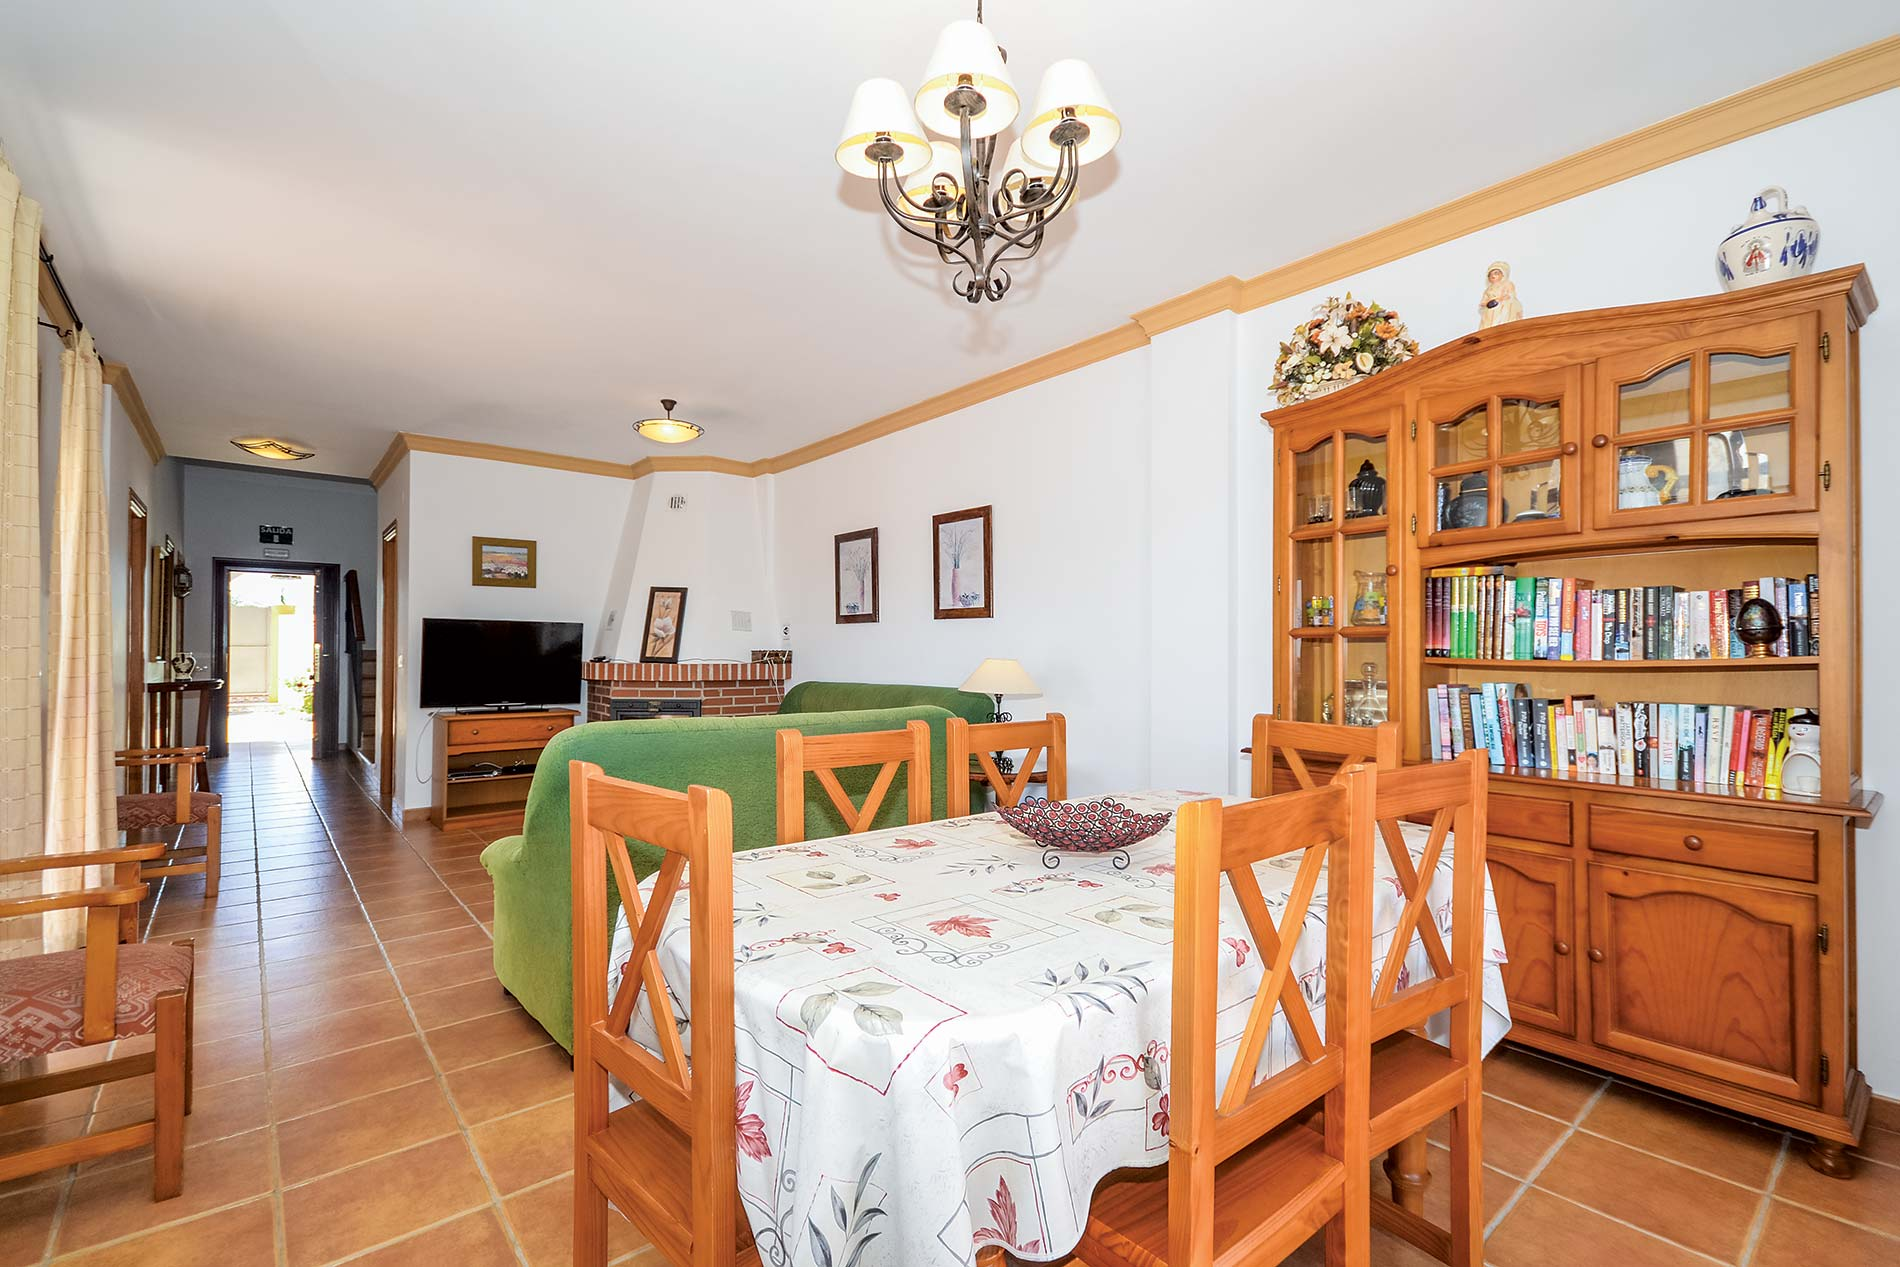 Villa Ana in Nerja - sleeps 6 people